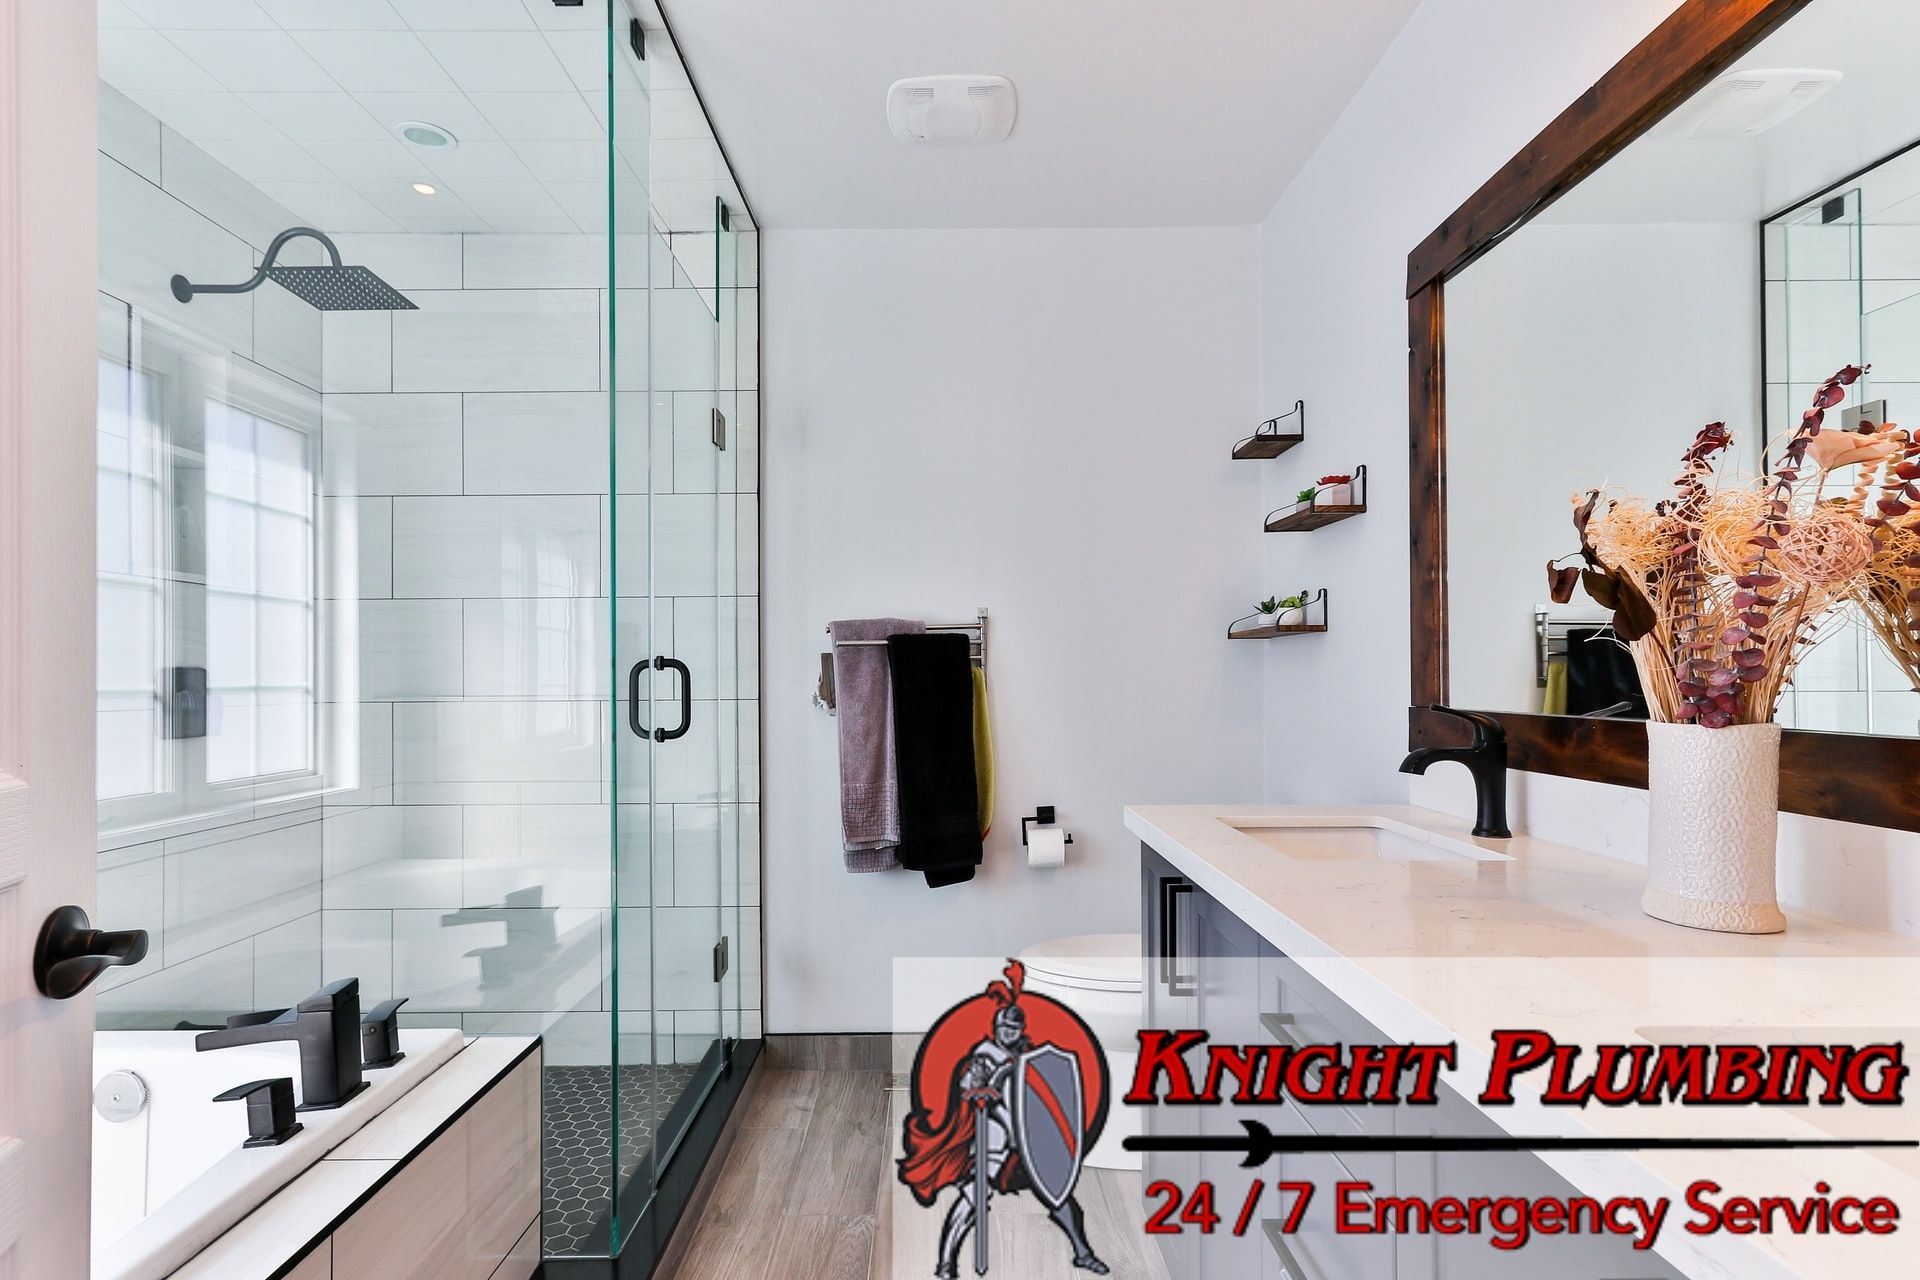 Remodeling? Ponder These Plumbing Recommendations!